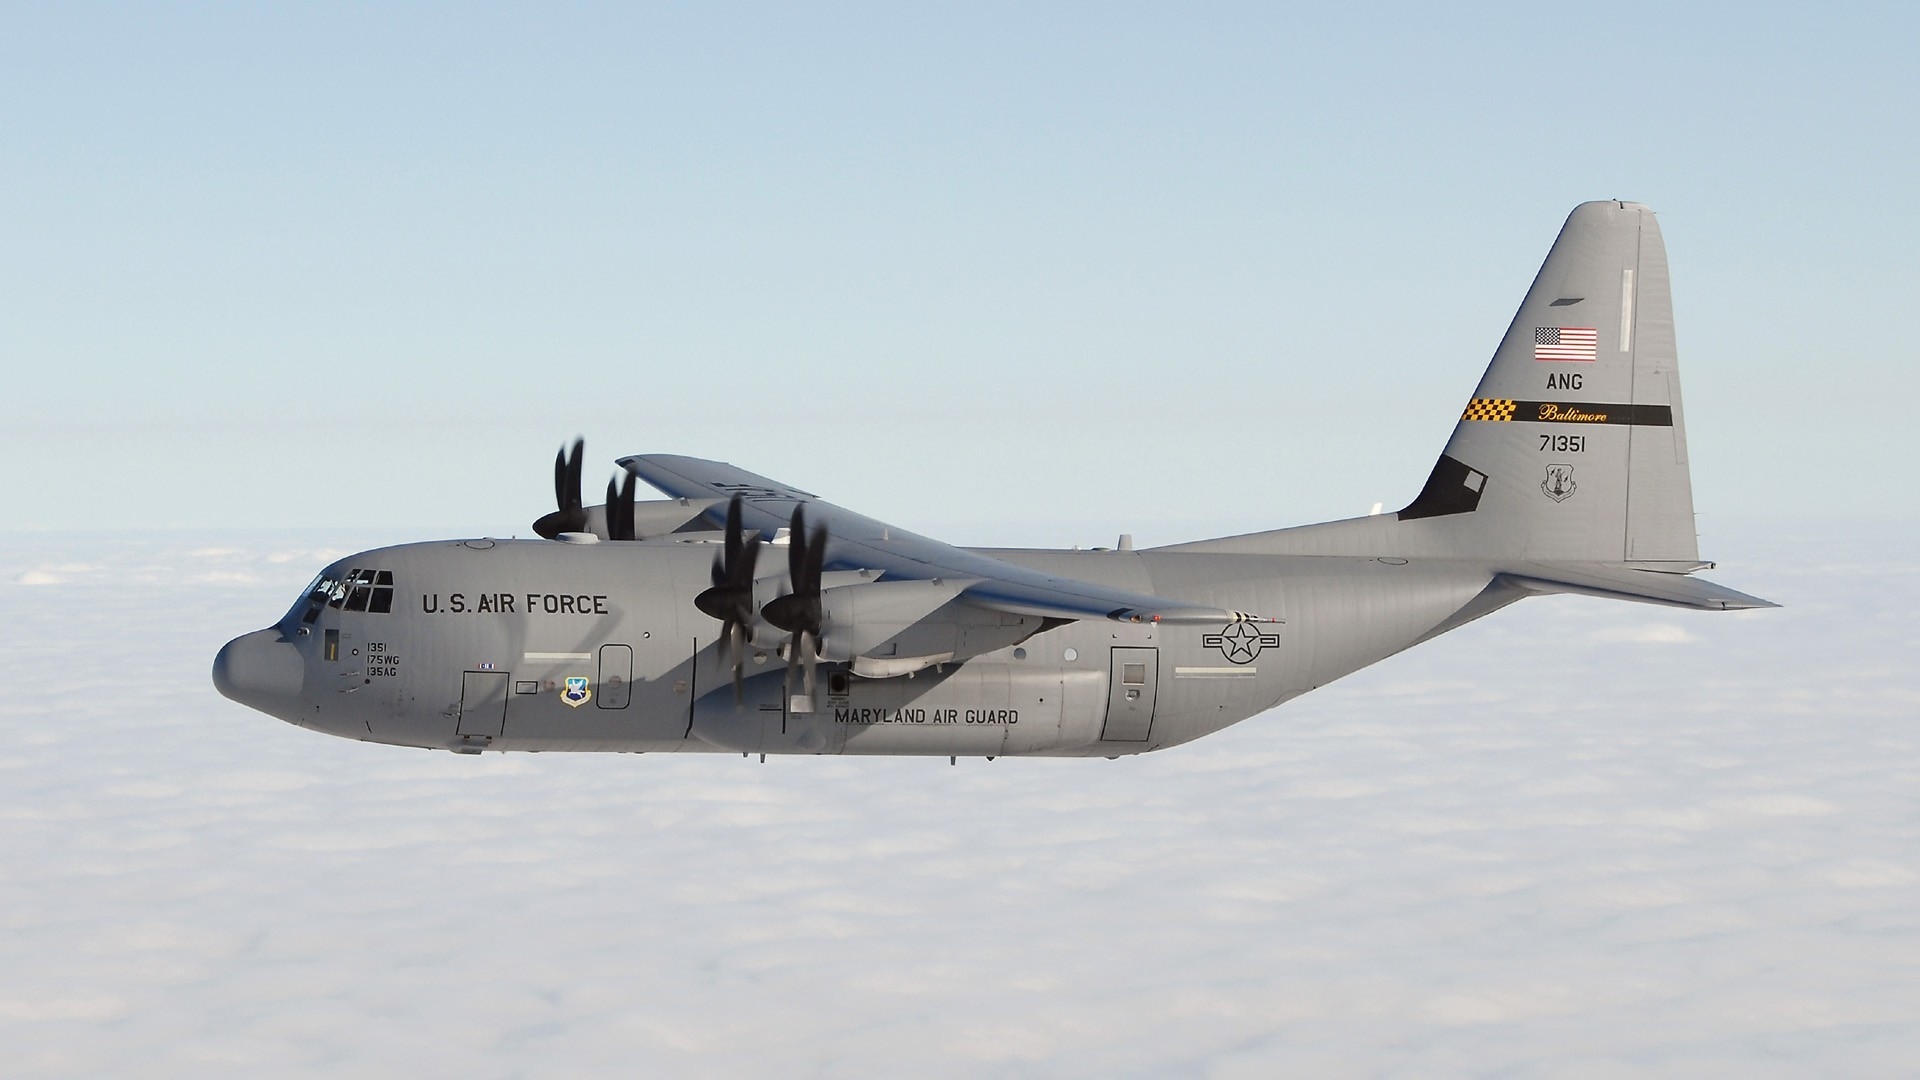 Aircraft military transportation C-130 HD Wallpaper